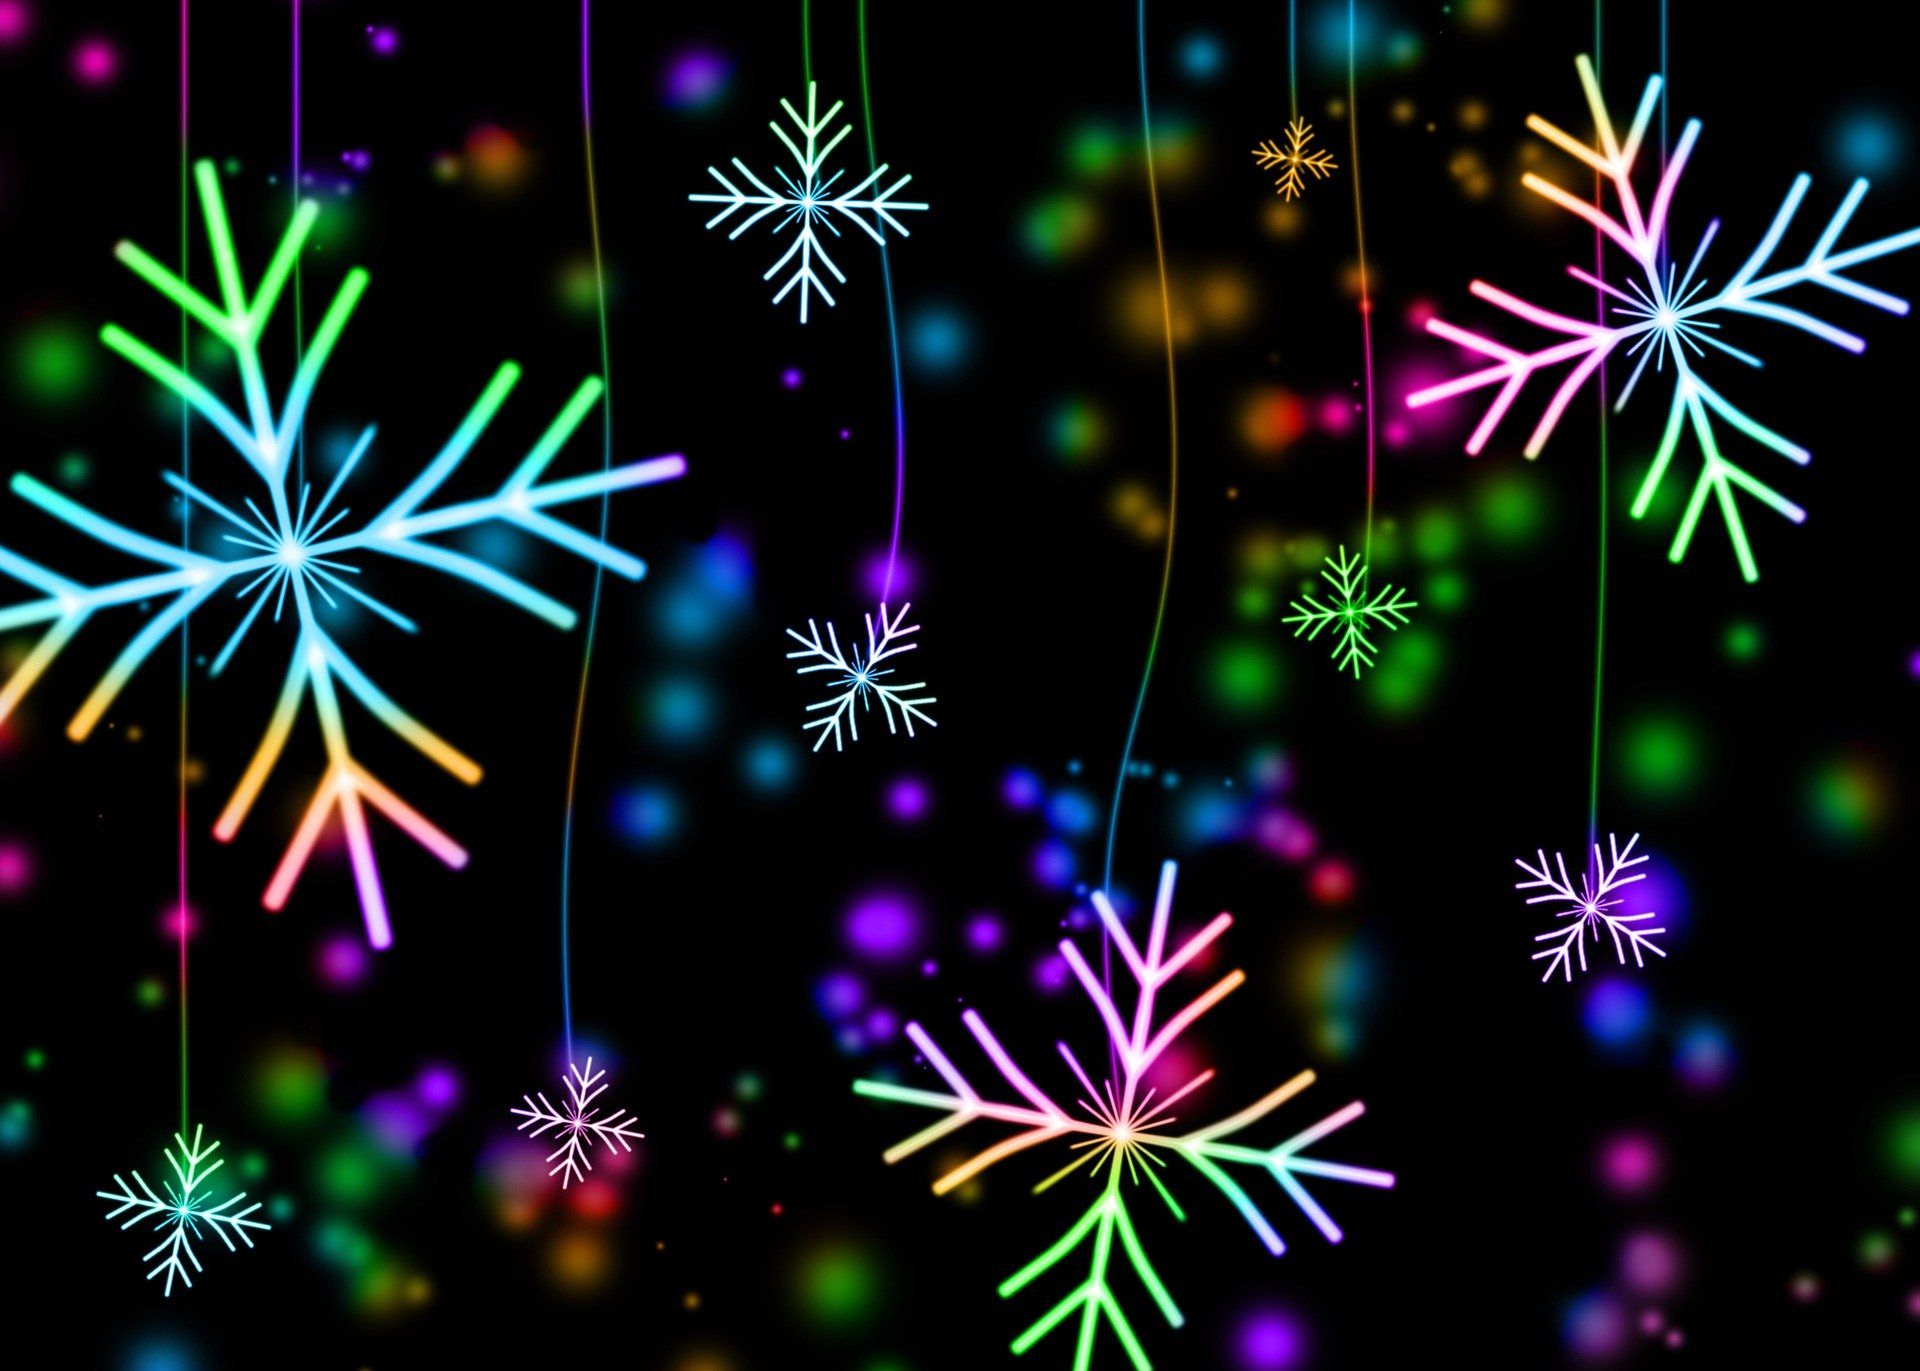 December Events in Collingwood to Bring in the Holidays